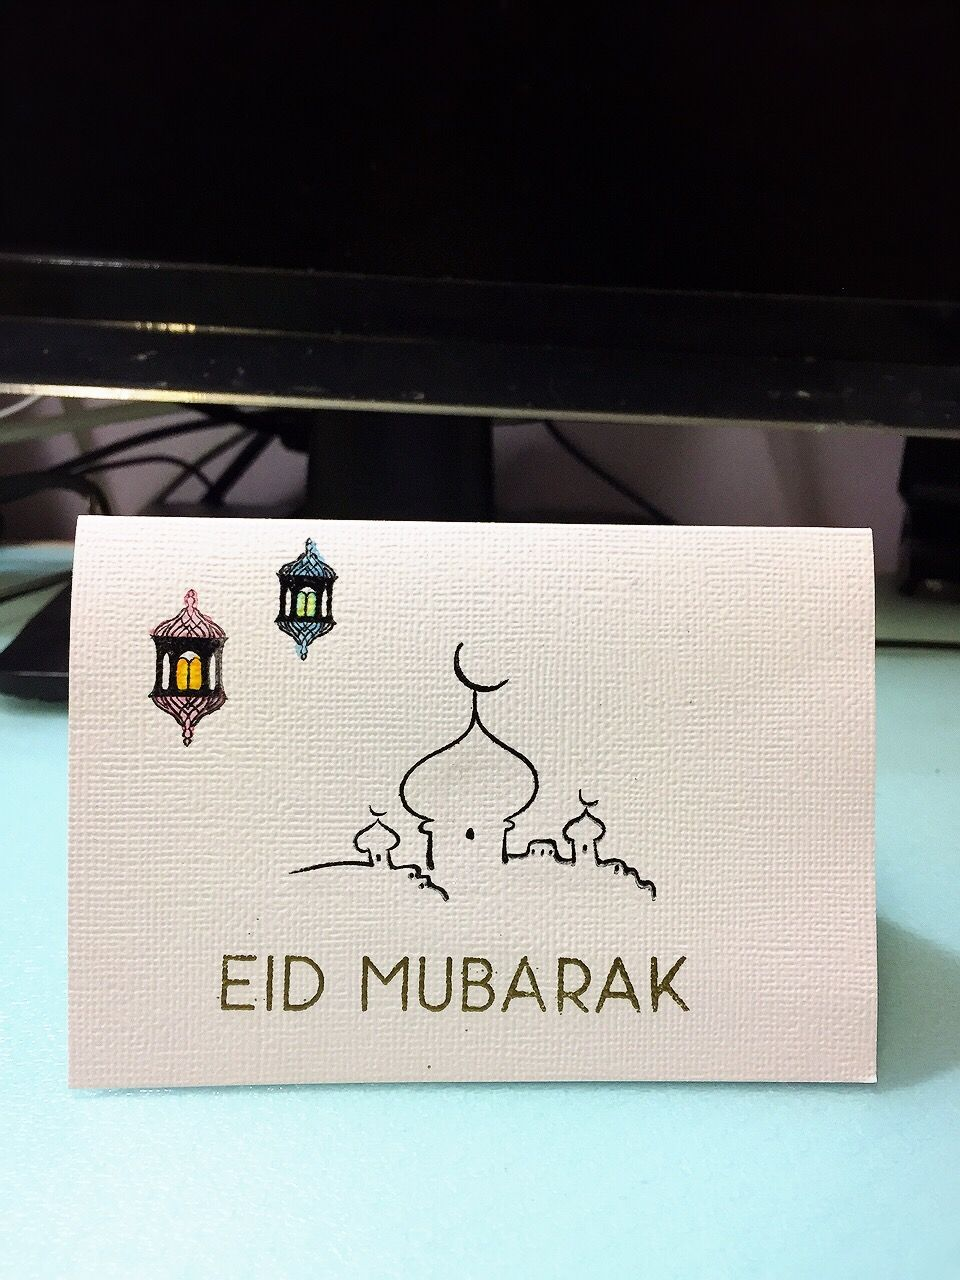 Eid Mubarak Making This Card For My Muslim Friend Using Eid